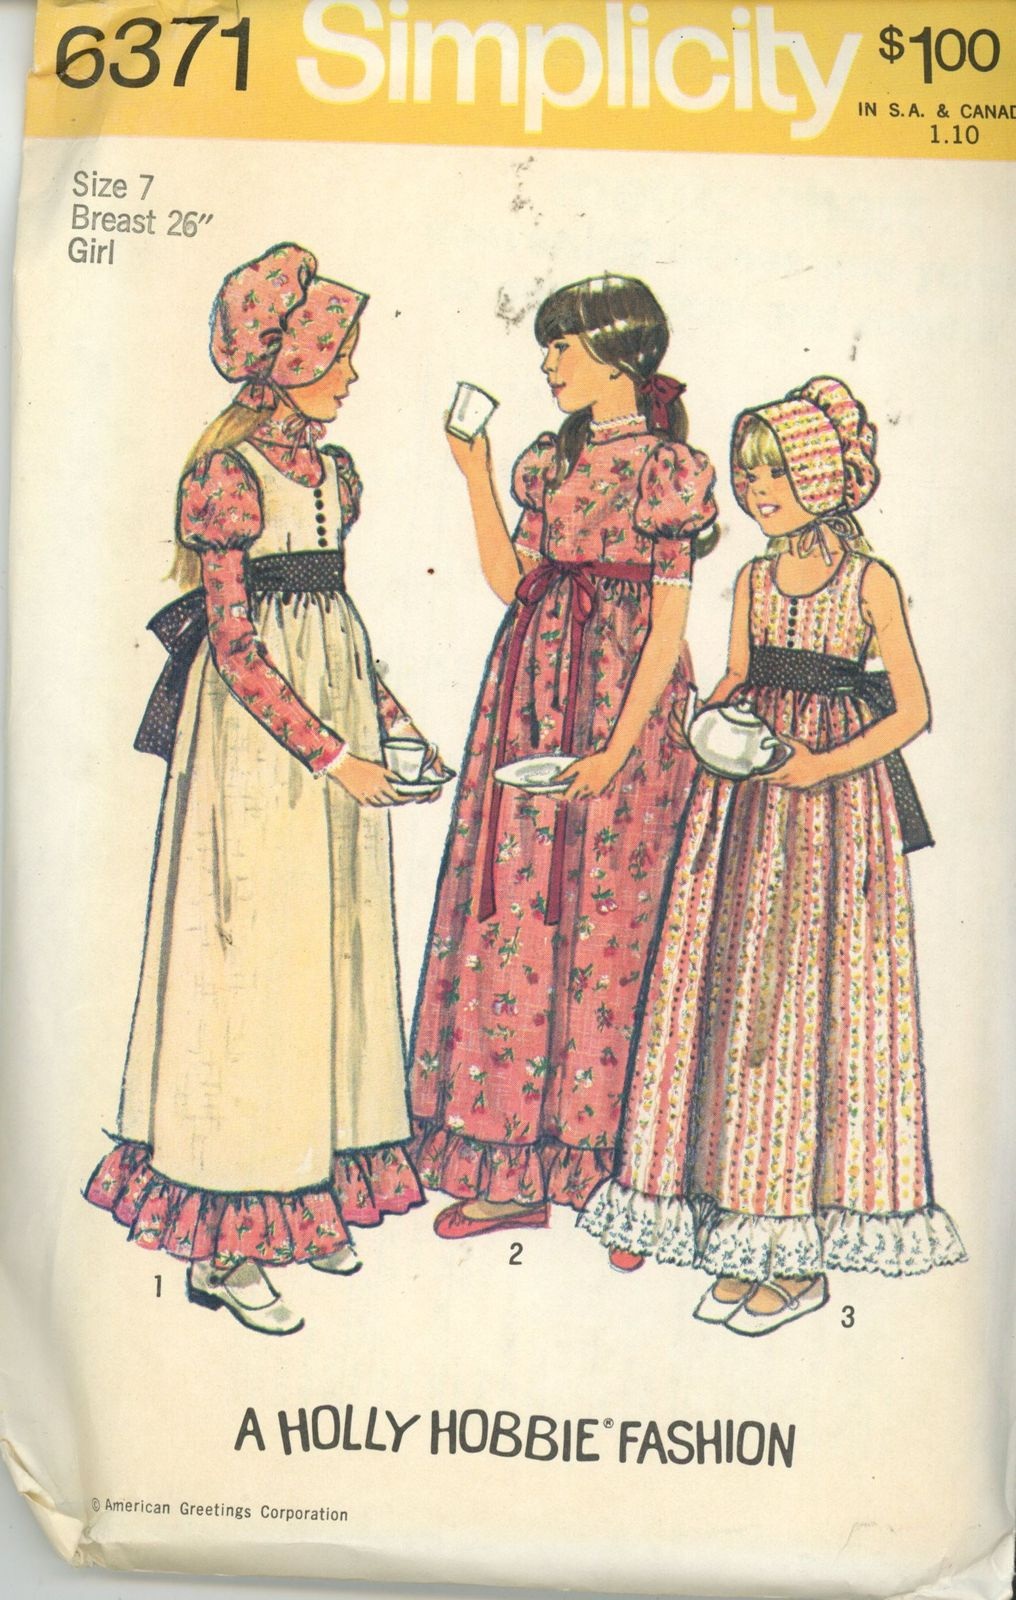 Primary image for Holly Hobbie Girl Dress Bonnet Jumper sewing pattern size 7 Simplicity 6371 vint